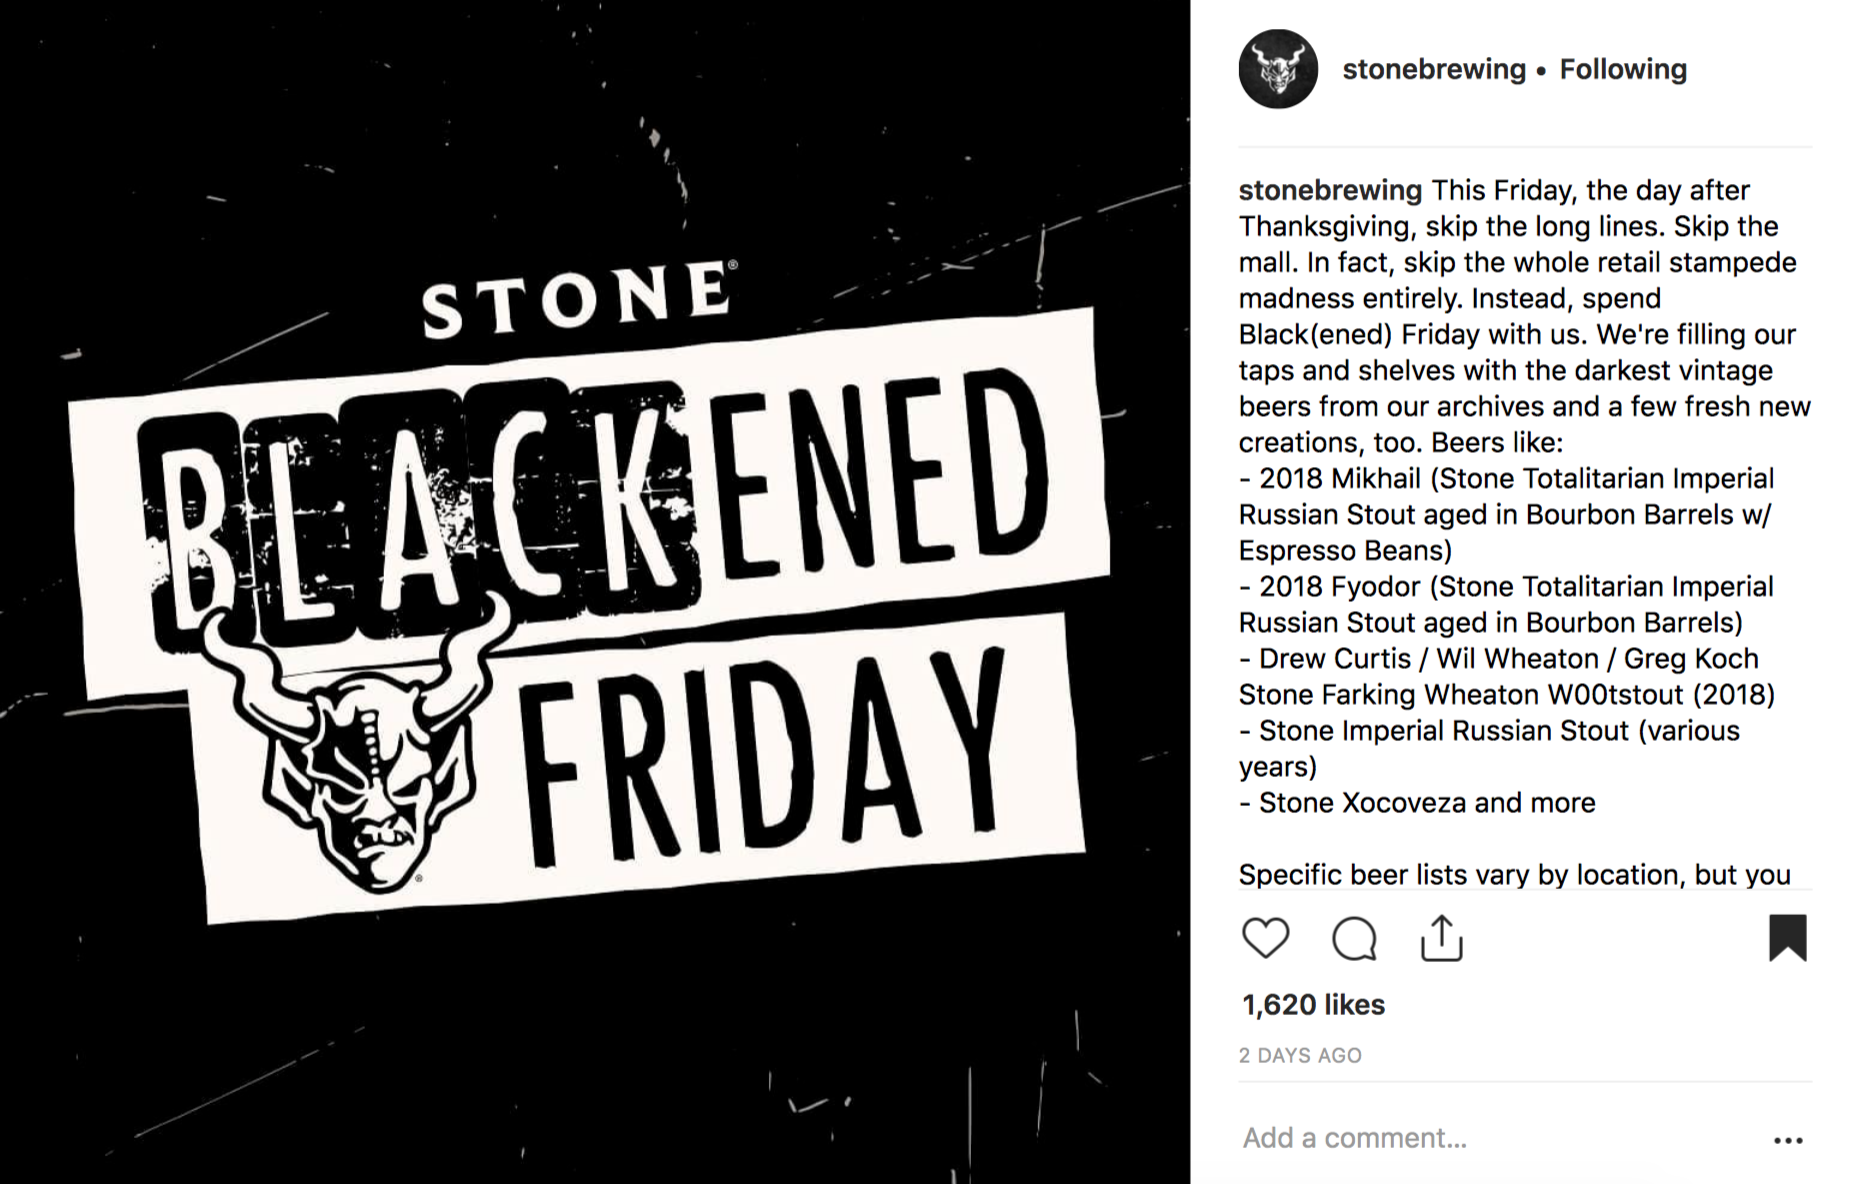 Stone Brewing's Special Beer Offerings for the 2018 BFCM Weekend.